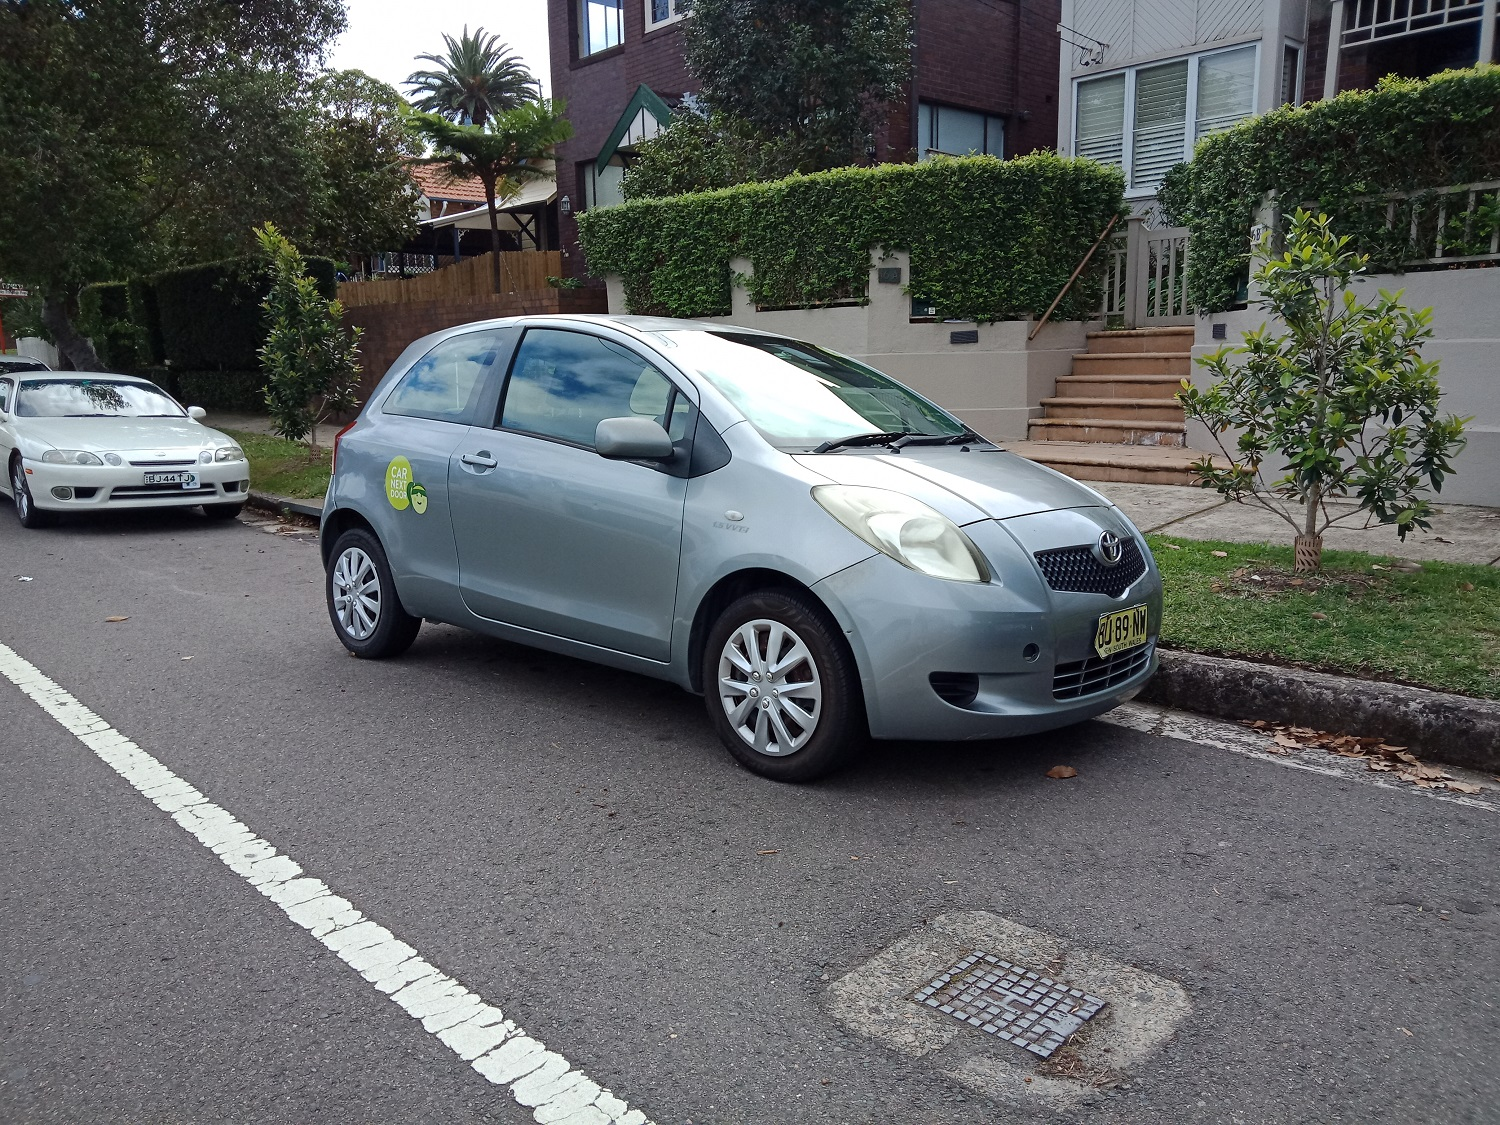 Picture of Erin's 2006 Toyota Yaris